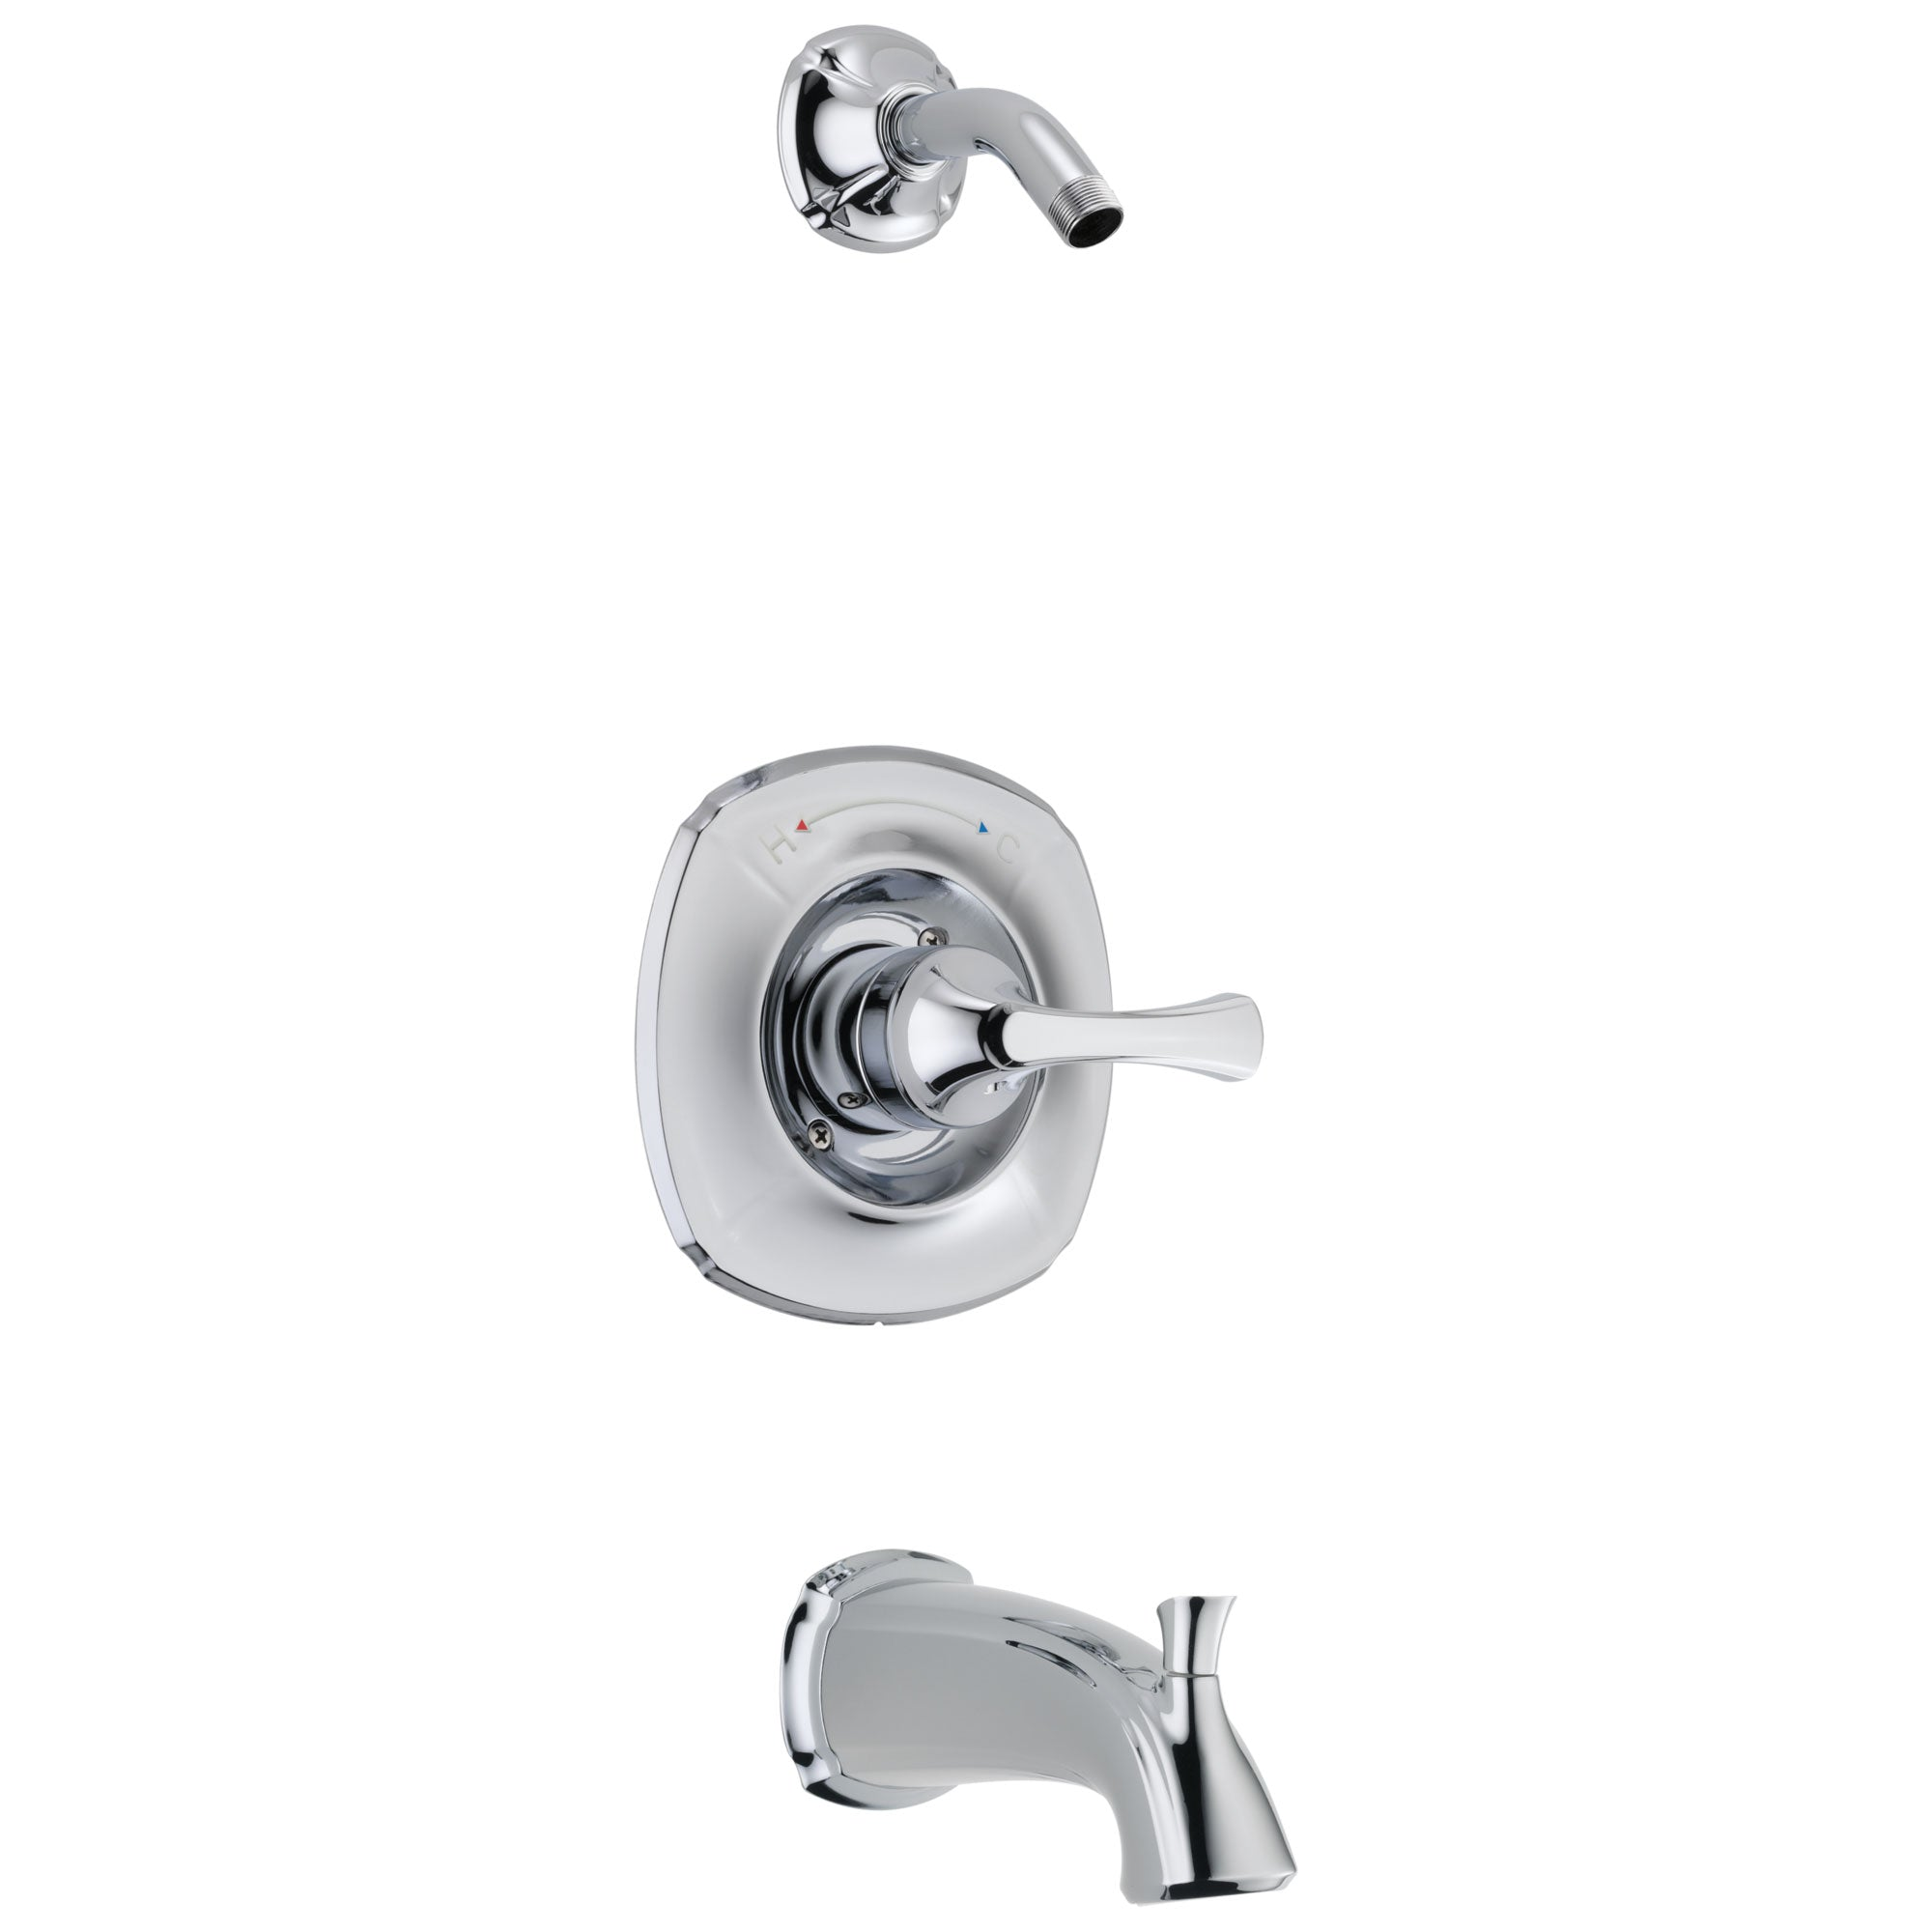 Delta Addison Collection Chrome Finish Monitor 14 Series Bath Tub and Shower Faucet Trim Kit - Less Showerhead (Requires Rough-in Valve) DT14492LHD